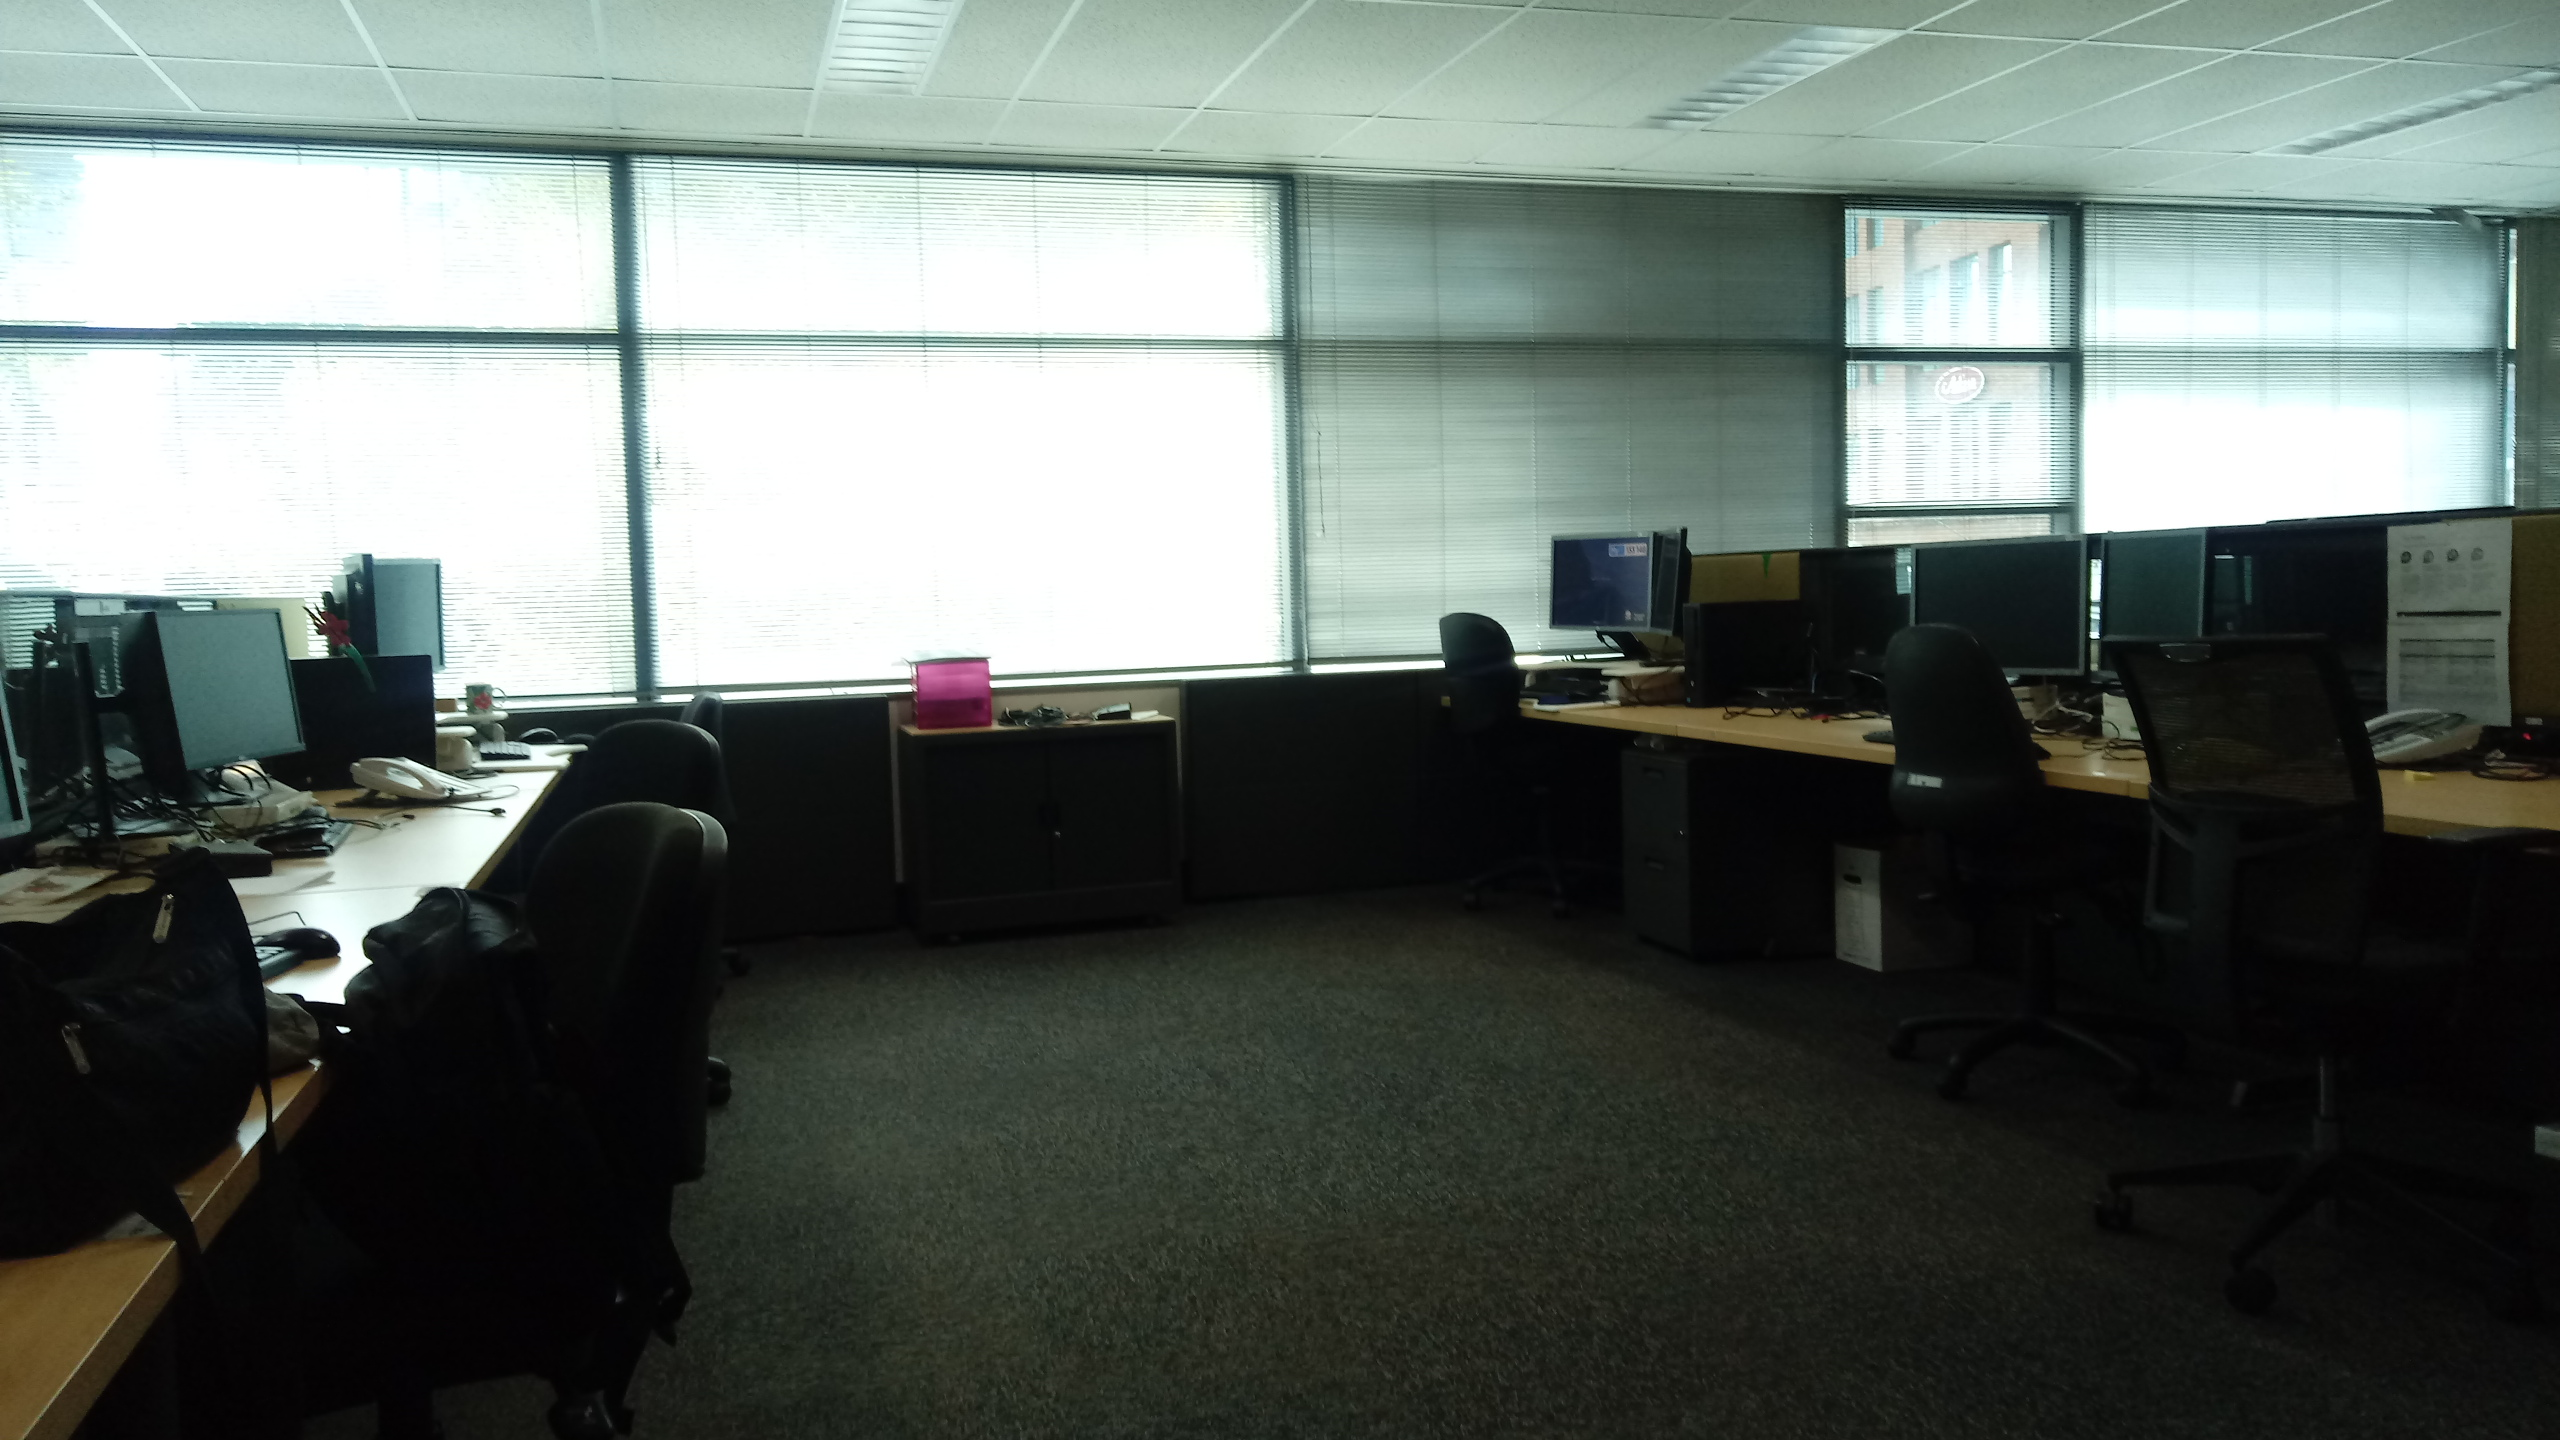 A photo of an empty office